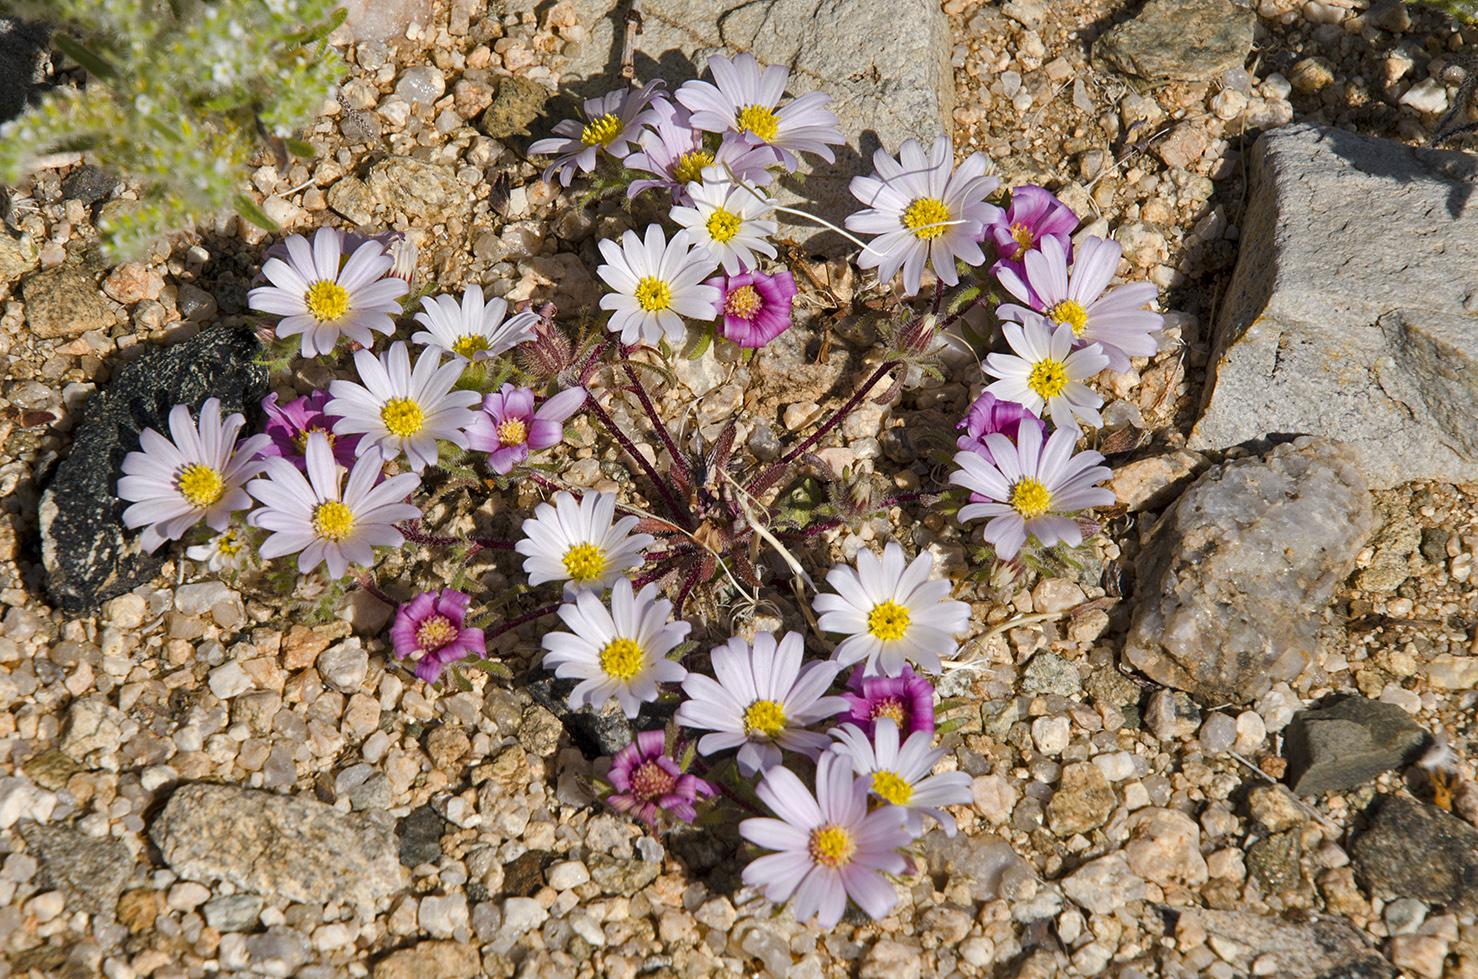 Joshua Tree National Park Wildflowers 38.jpg